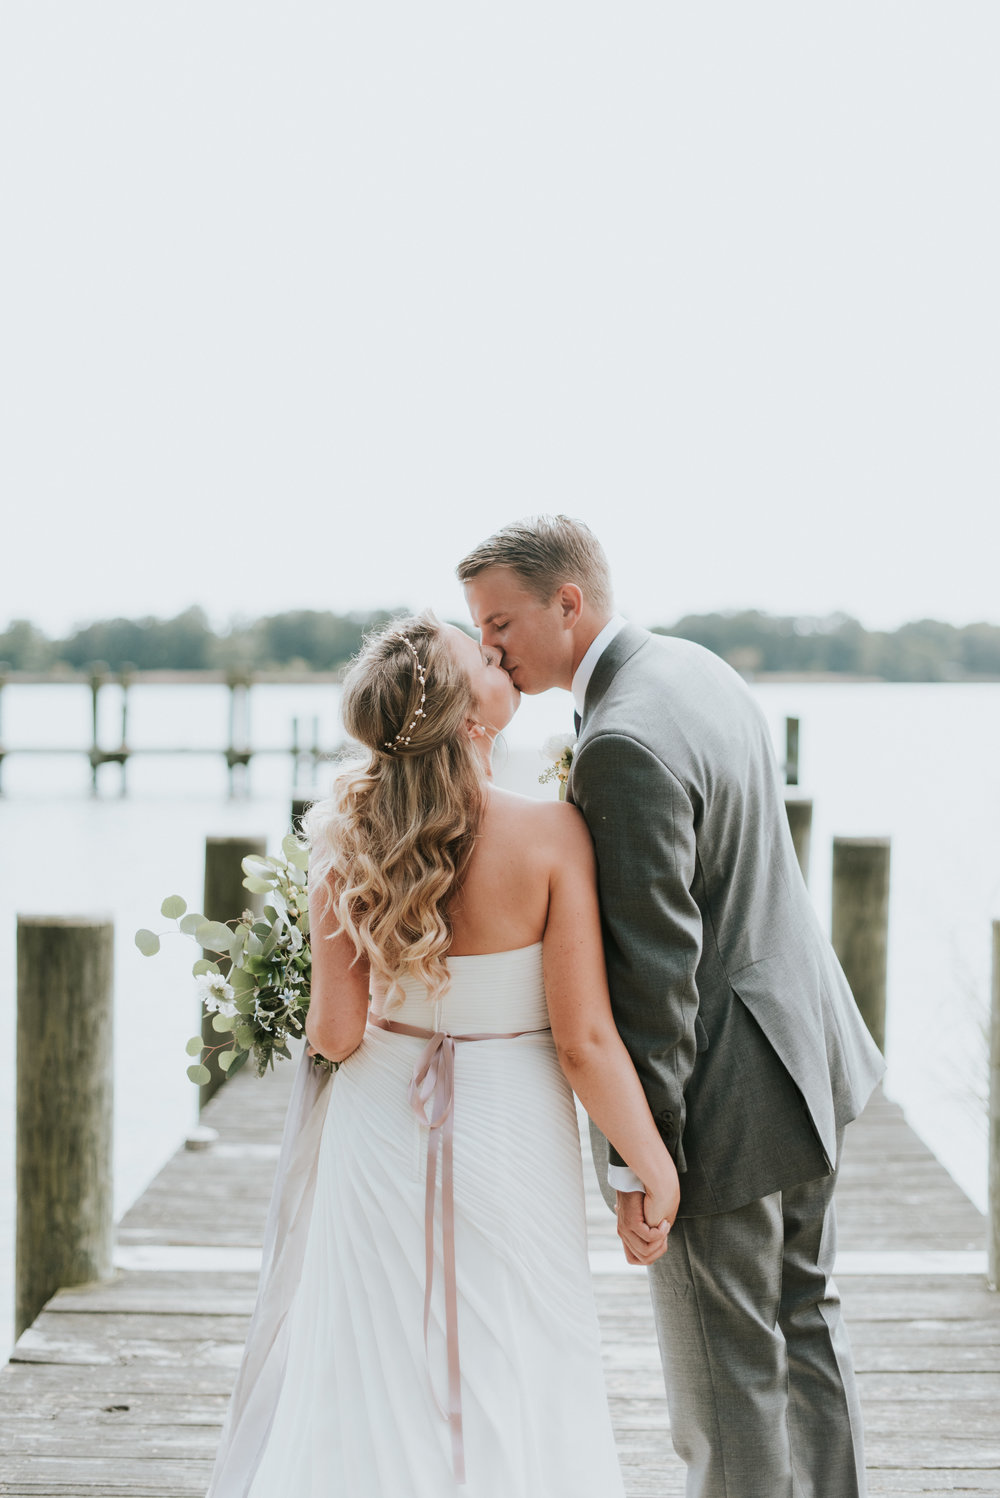 Rustic Oyster Themed Eastern Shore Maryland Outdoor Wedding by East Made Event Company Wedding Planner and Bekah Kay Creative229.jpg